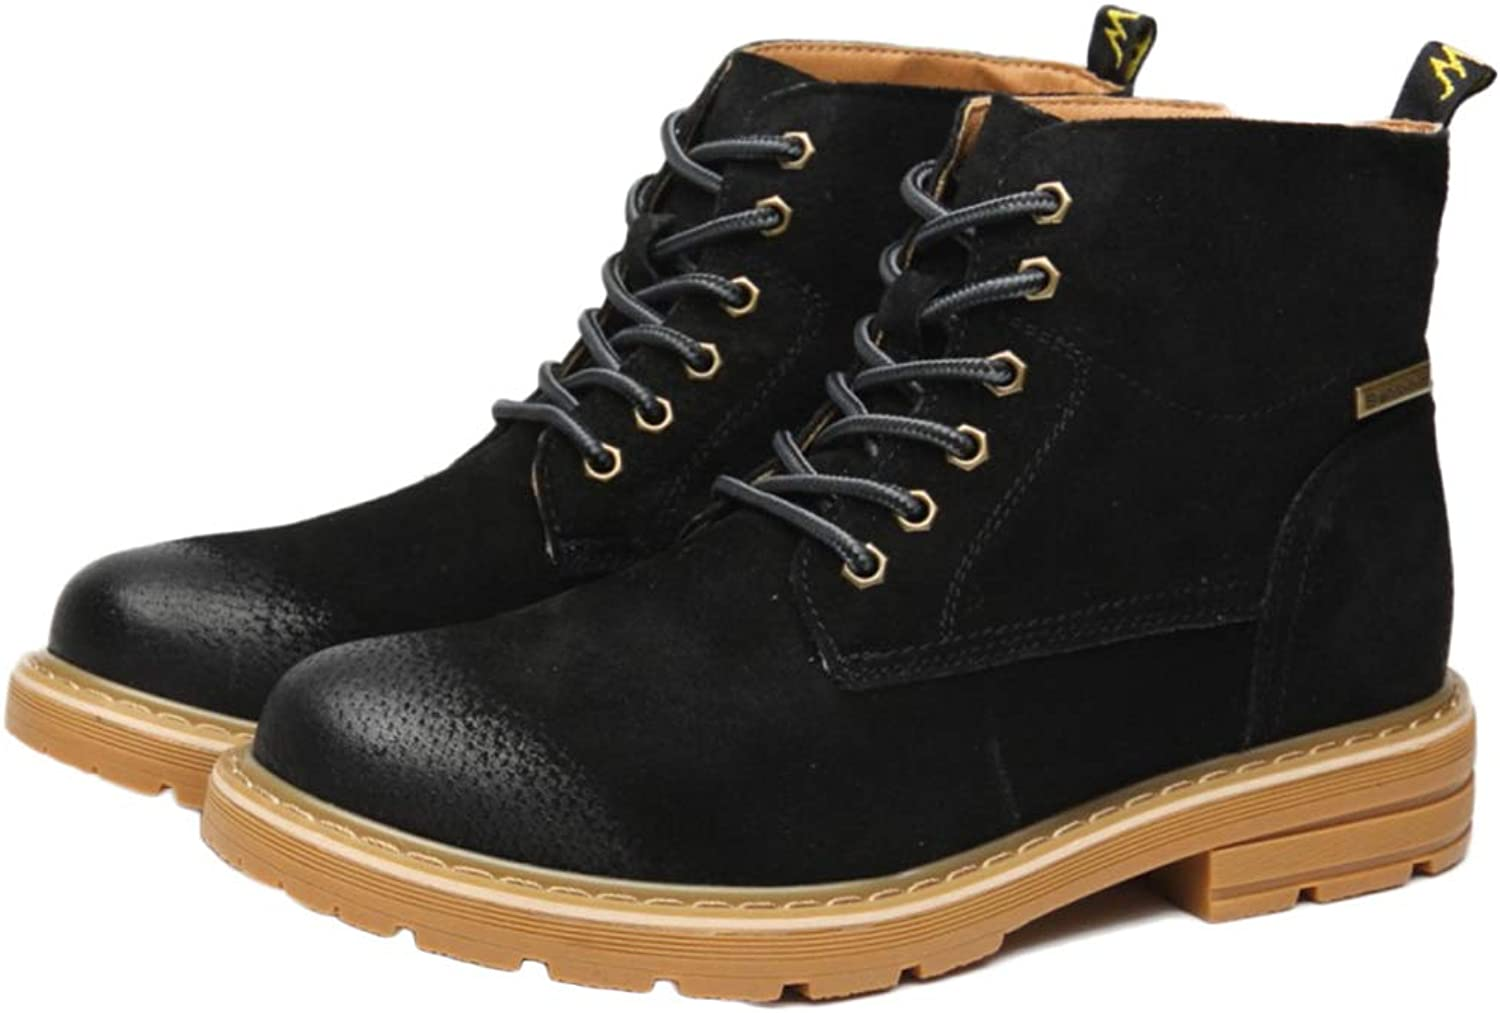 Snfgoij Desert Boots Suede Lace Up Retro Autumn Fashion Martin Boots Tooling Boots Retro High Help Men's Boots